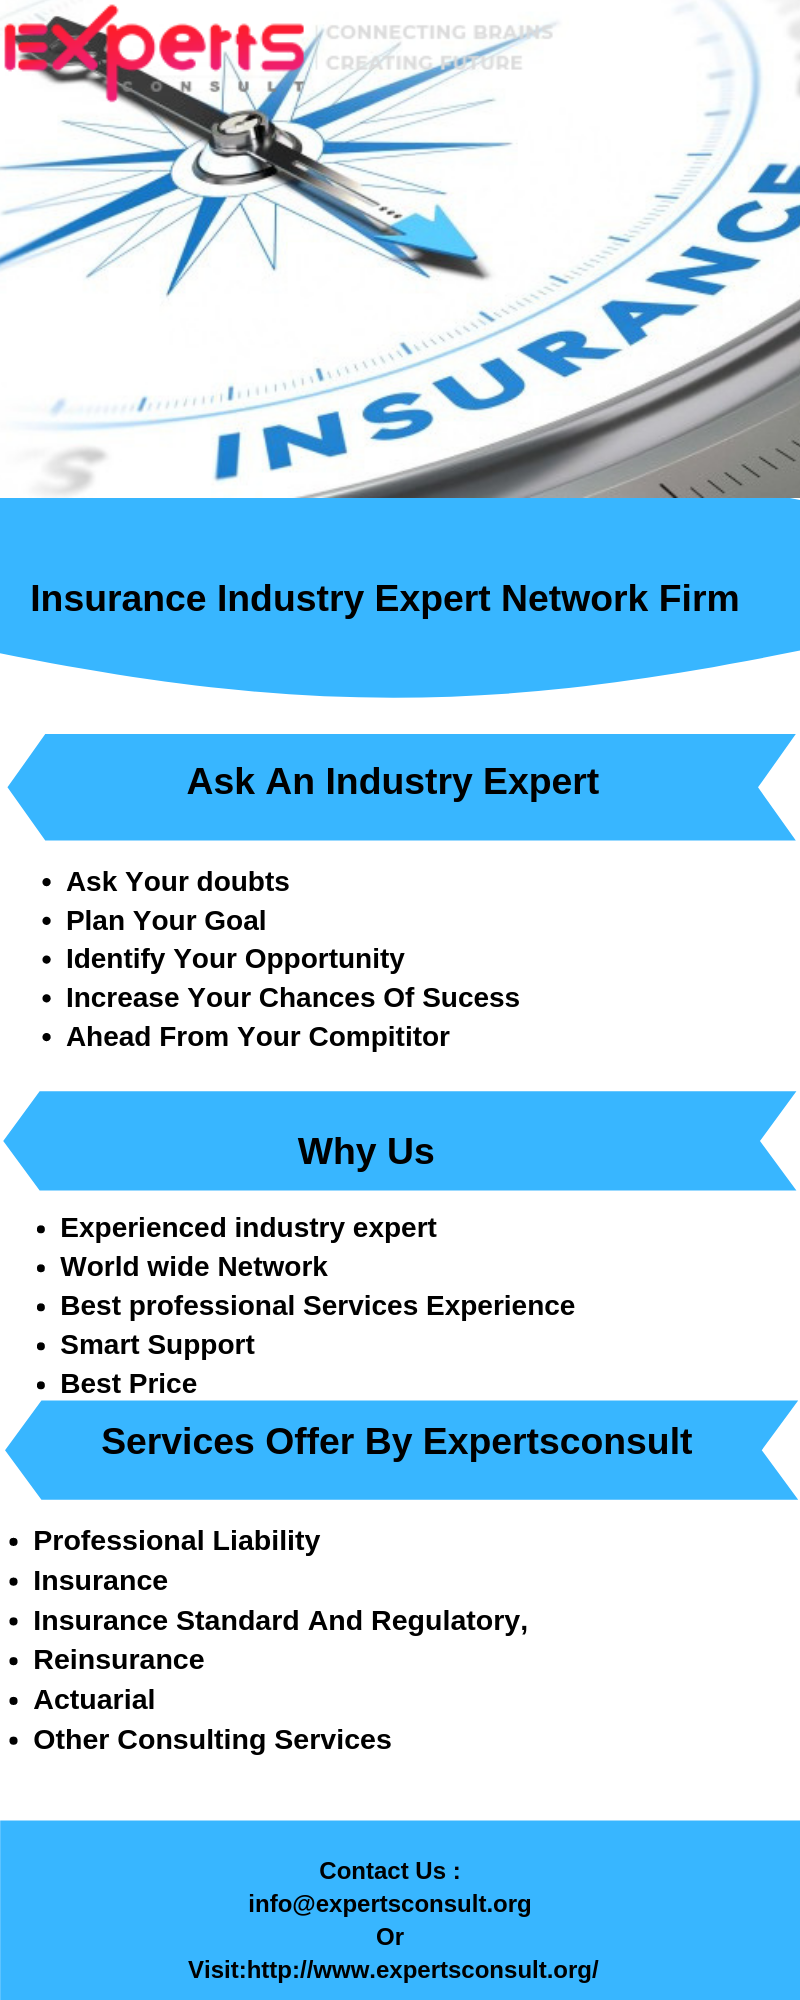 Expertsconsult Is Leading Insurance Industry Expert Service